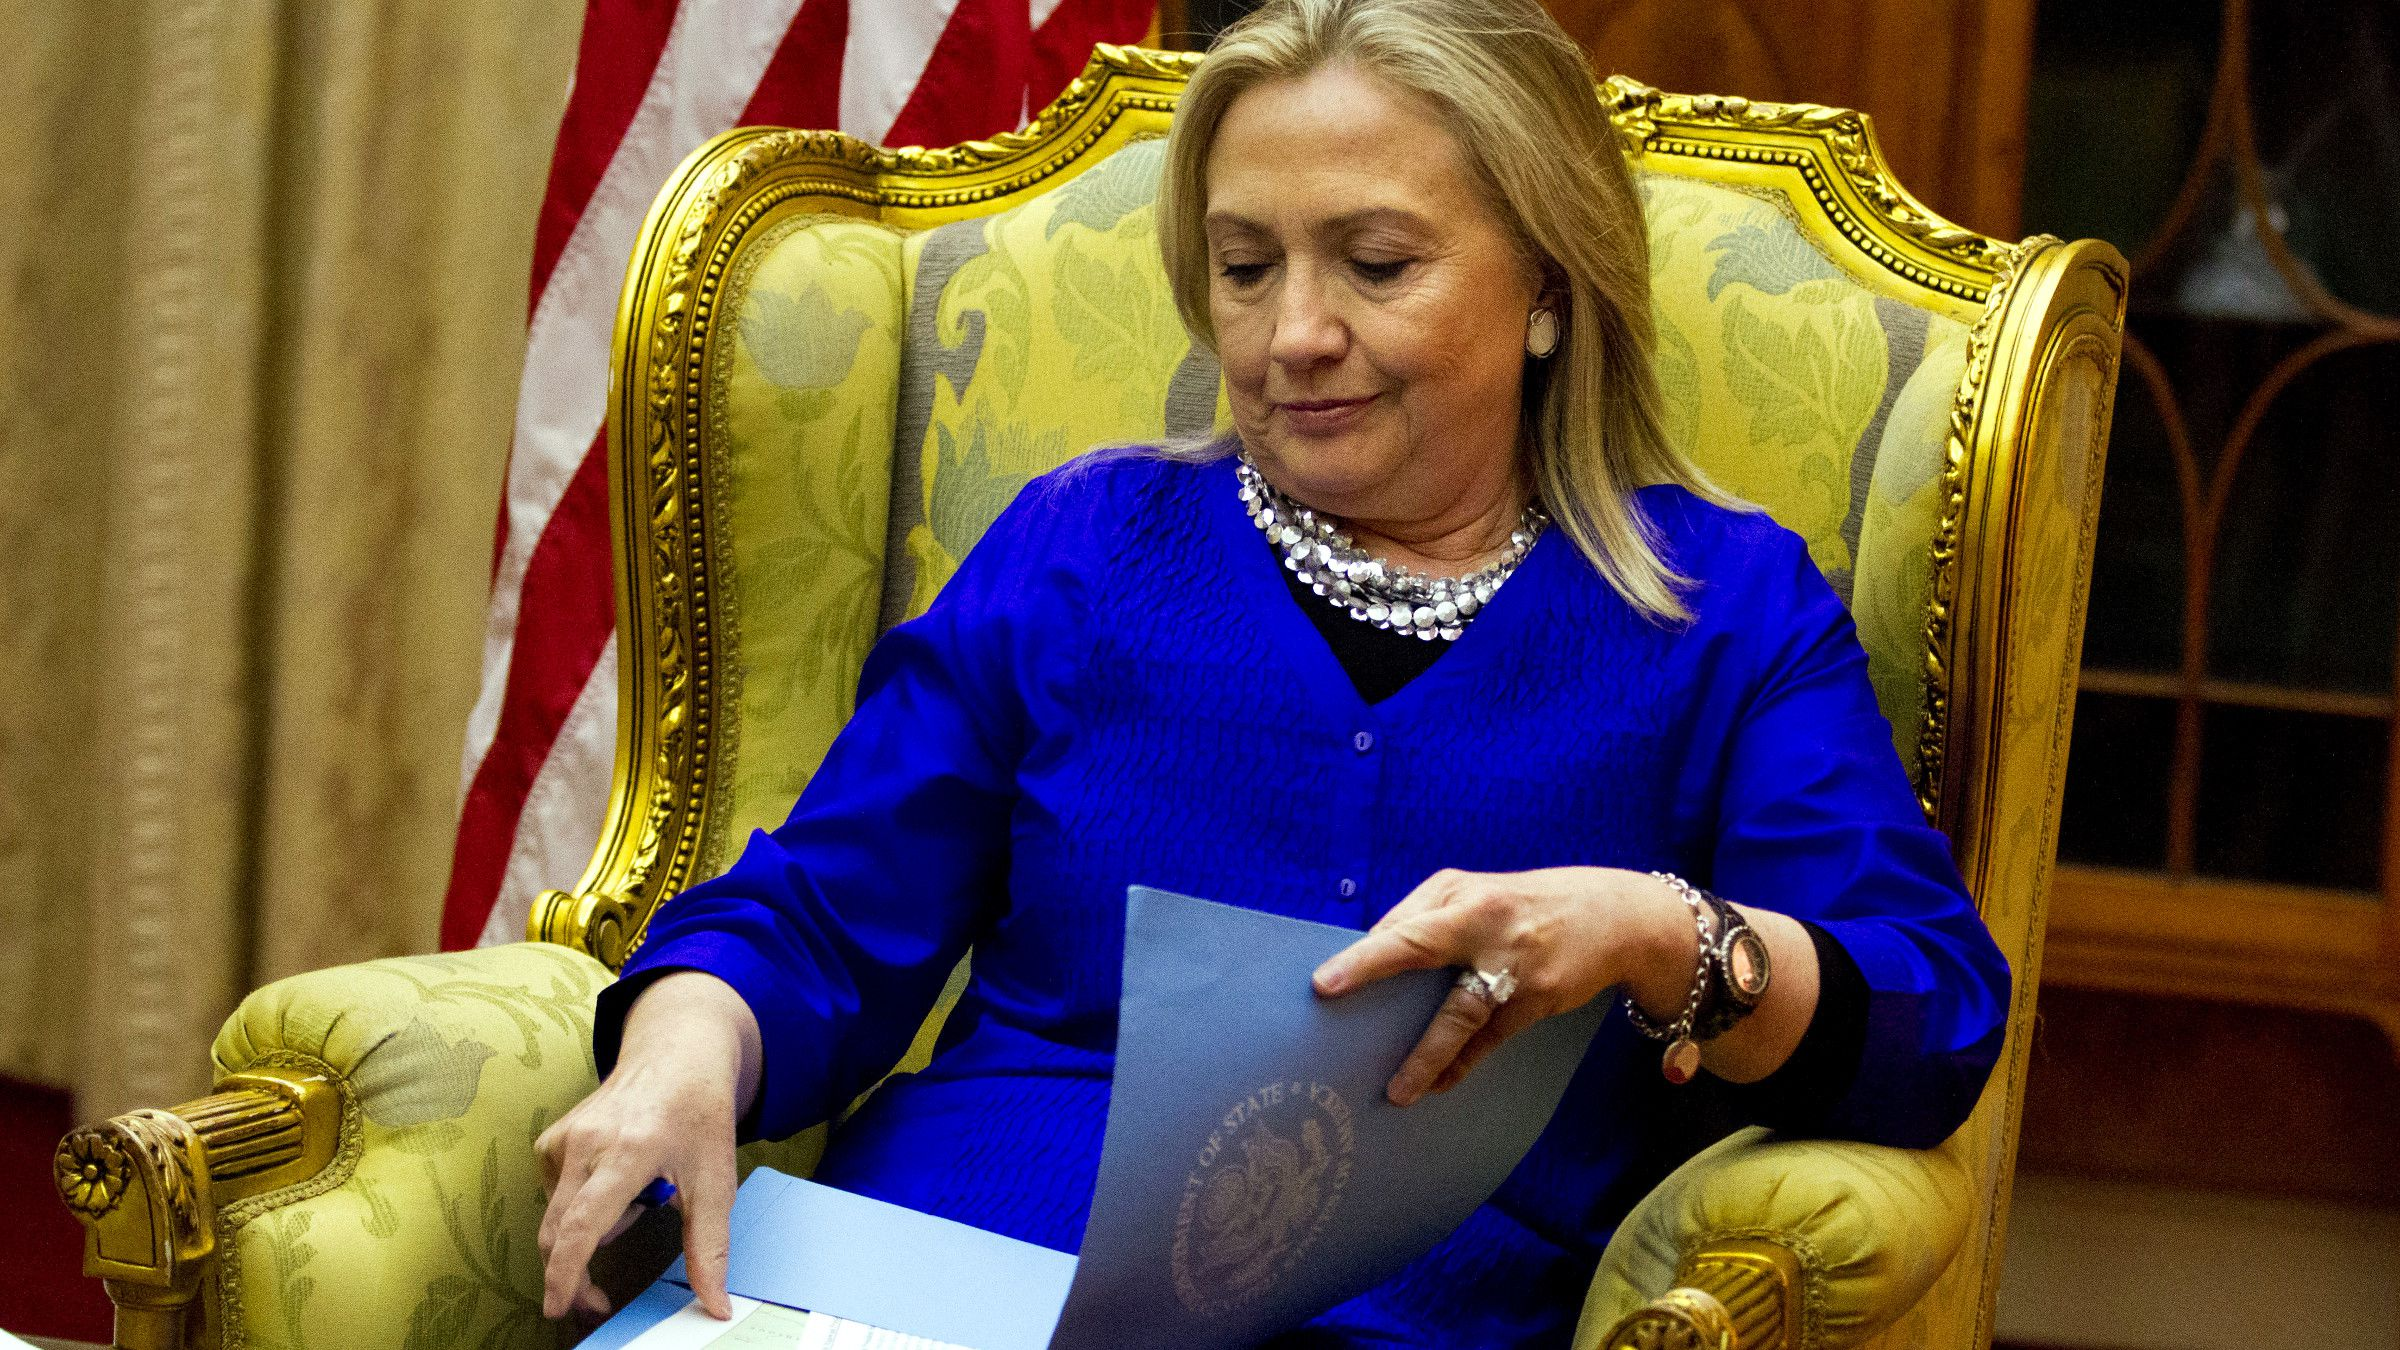 U.S. Secretary of State Hillary Rodham Clinton, opens a folder full of papers at the start of a meeting with Malawi's President Joyce Banda, not pictured, at the State House in Lilongwe, Malawi, on Sunday, Aug. 5, 2012. This is the first visit to Malawi by any U.S. Secretary of State.